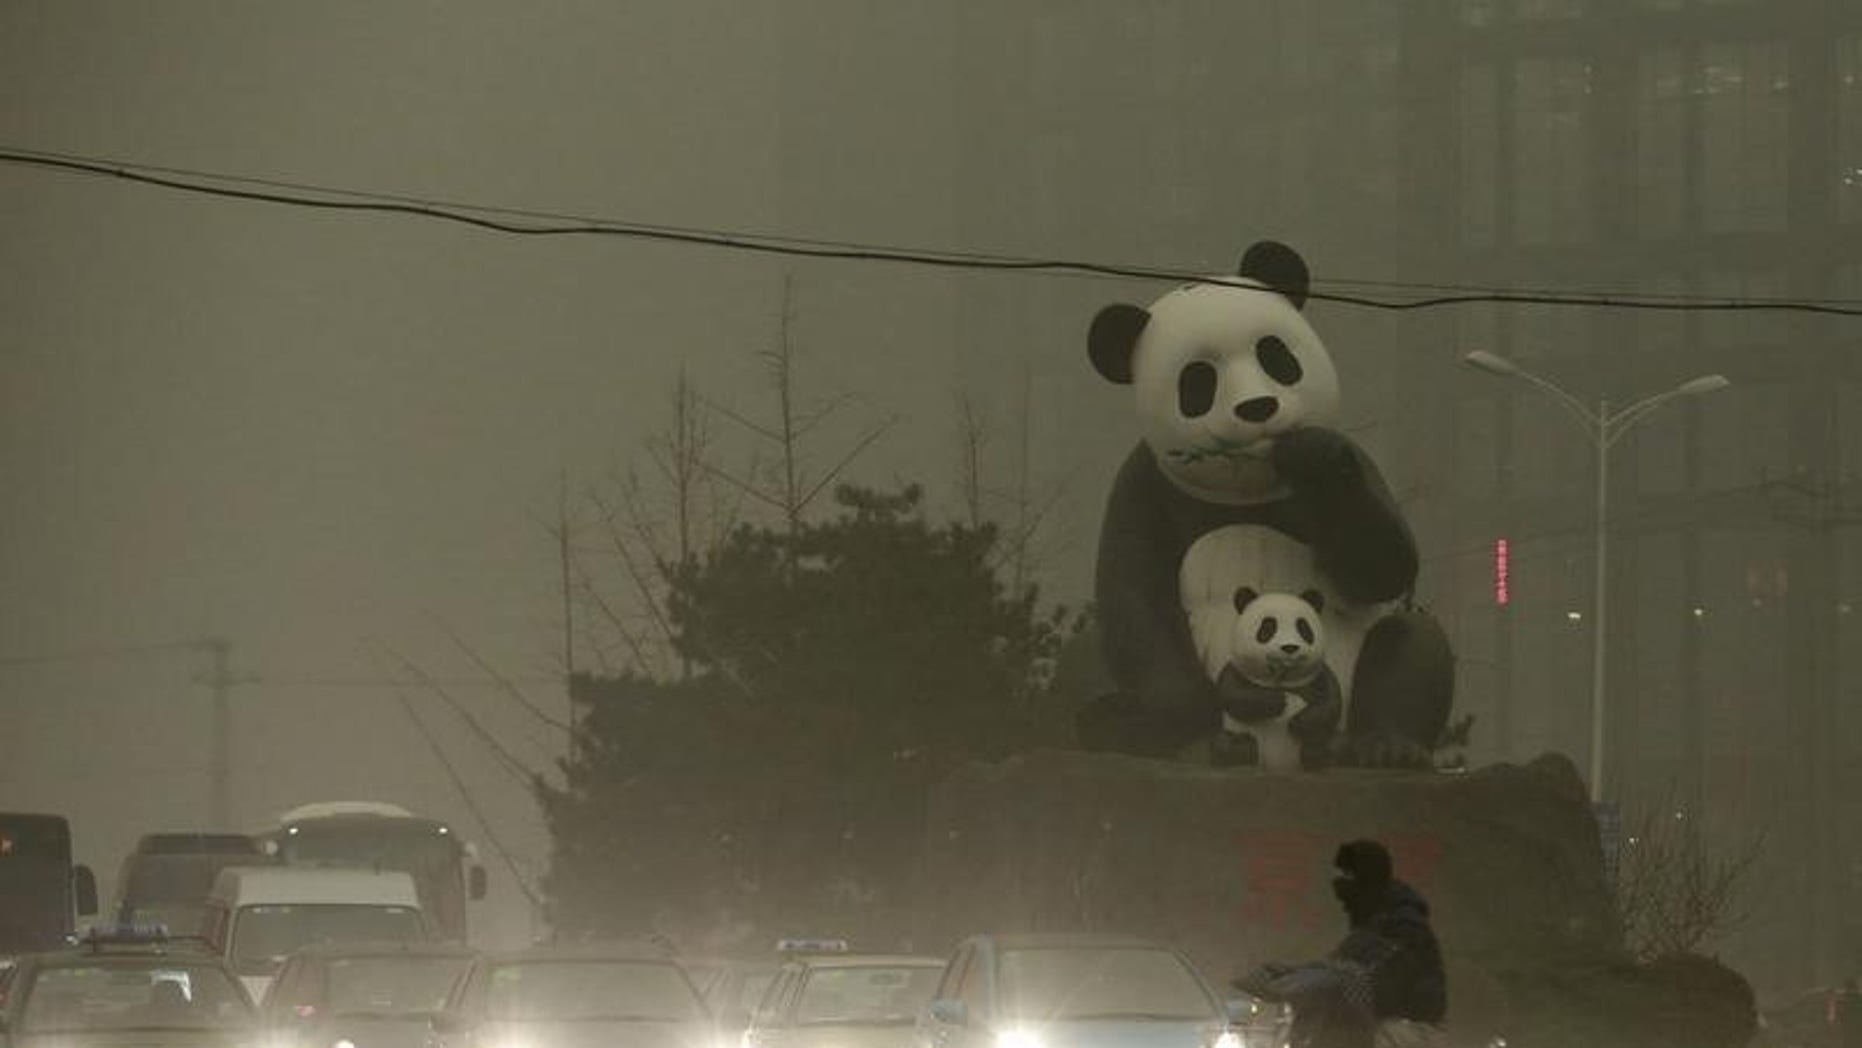 A resident rides an electric bicycle across a street amid heavy smog as vehicles wait for a traffic light next to a statue of pandas, a landmark of the Wangjing area in Beijing